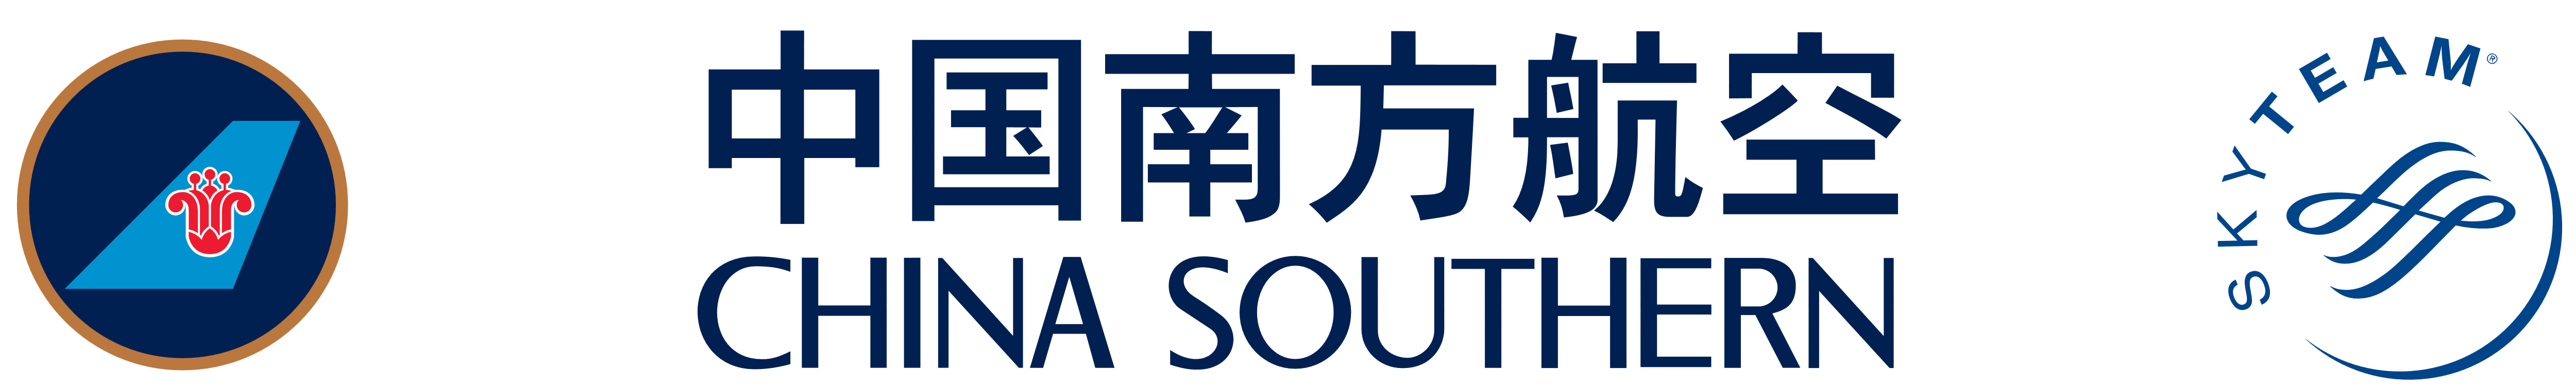 Download. China Southern Airlines PlusPng.com  - Logo China Southern Airlines PNG